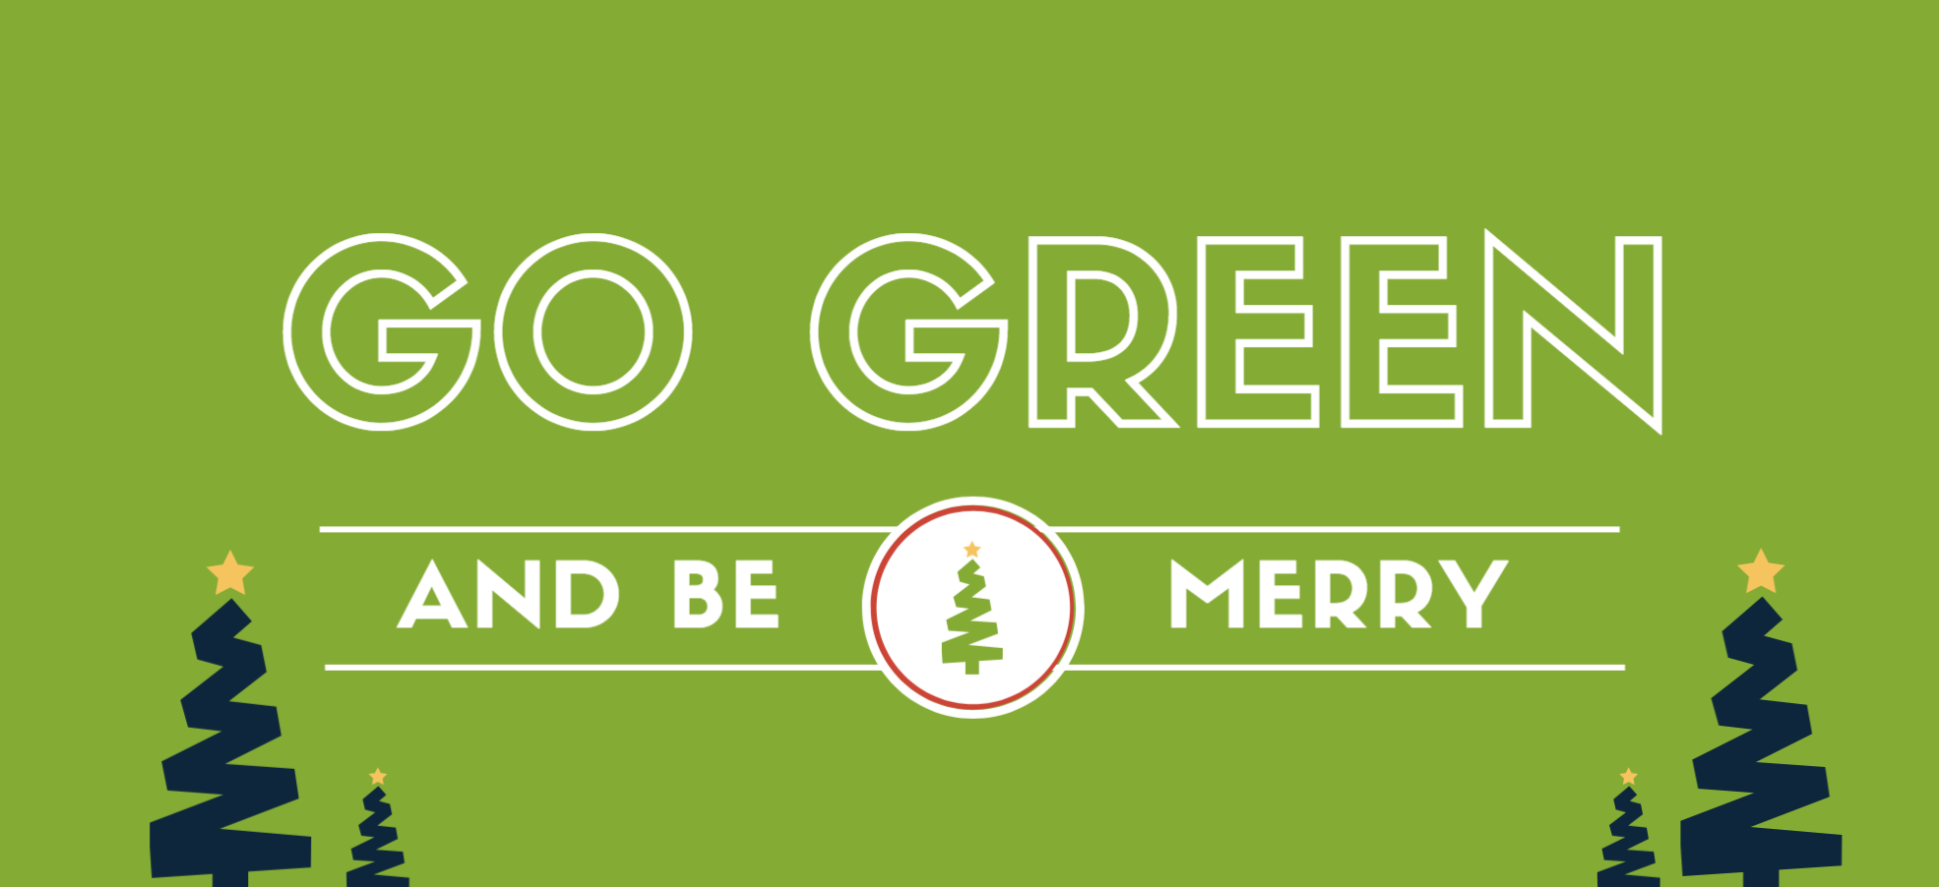 Go Green & Be Merry